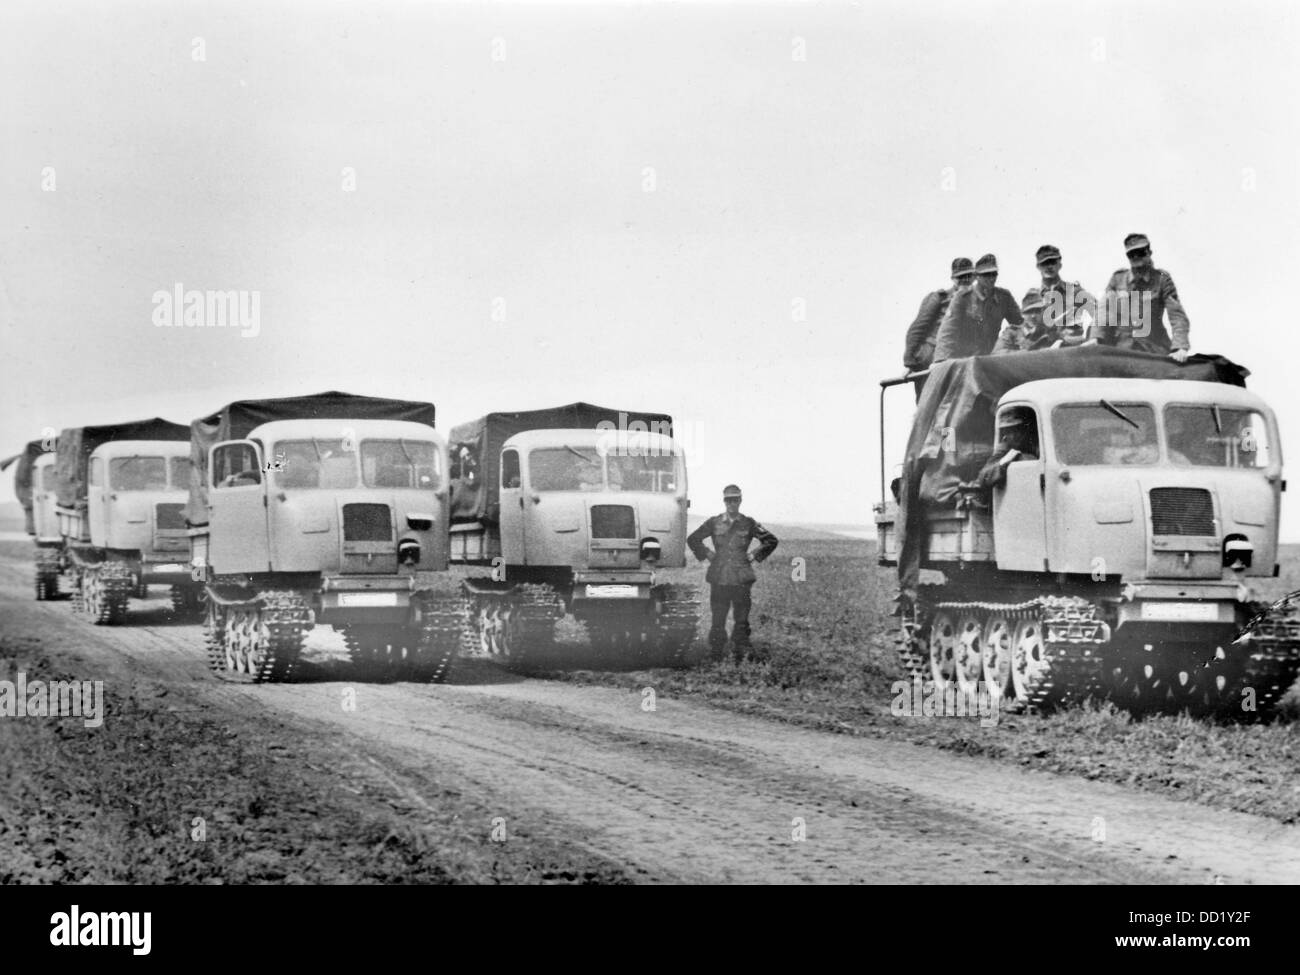 """The Nazi Propaganda! on the back of the image reads: """"New types of tractors for the Eastern Front. The industry Stock Photo"""